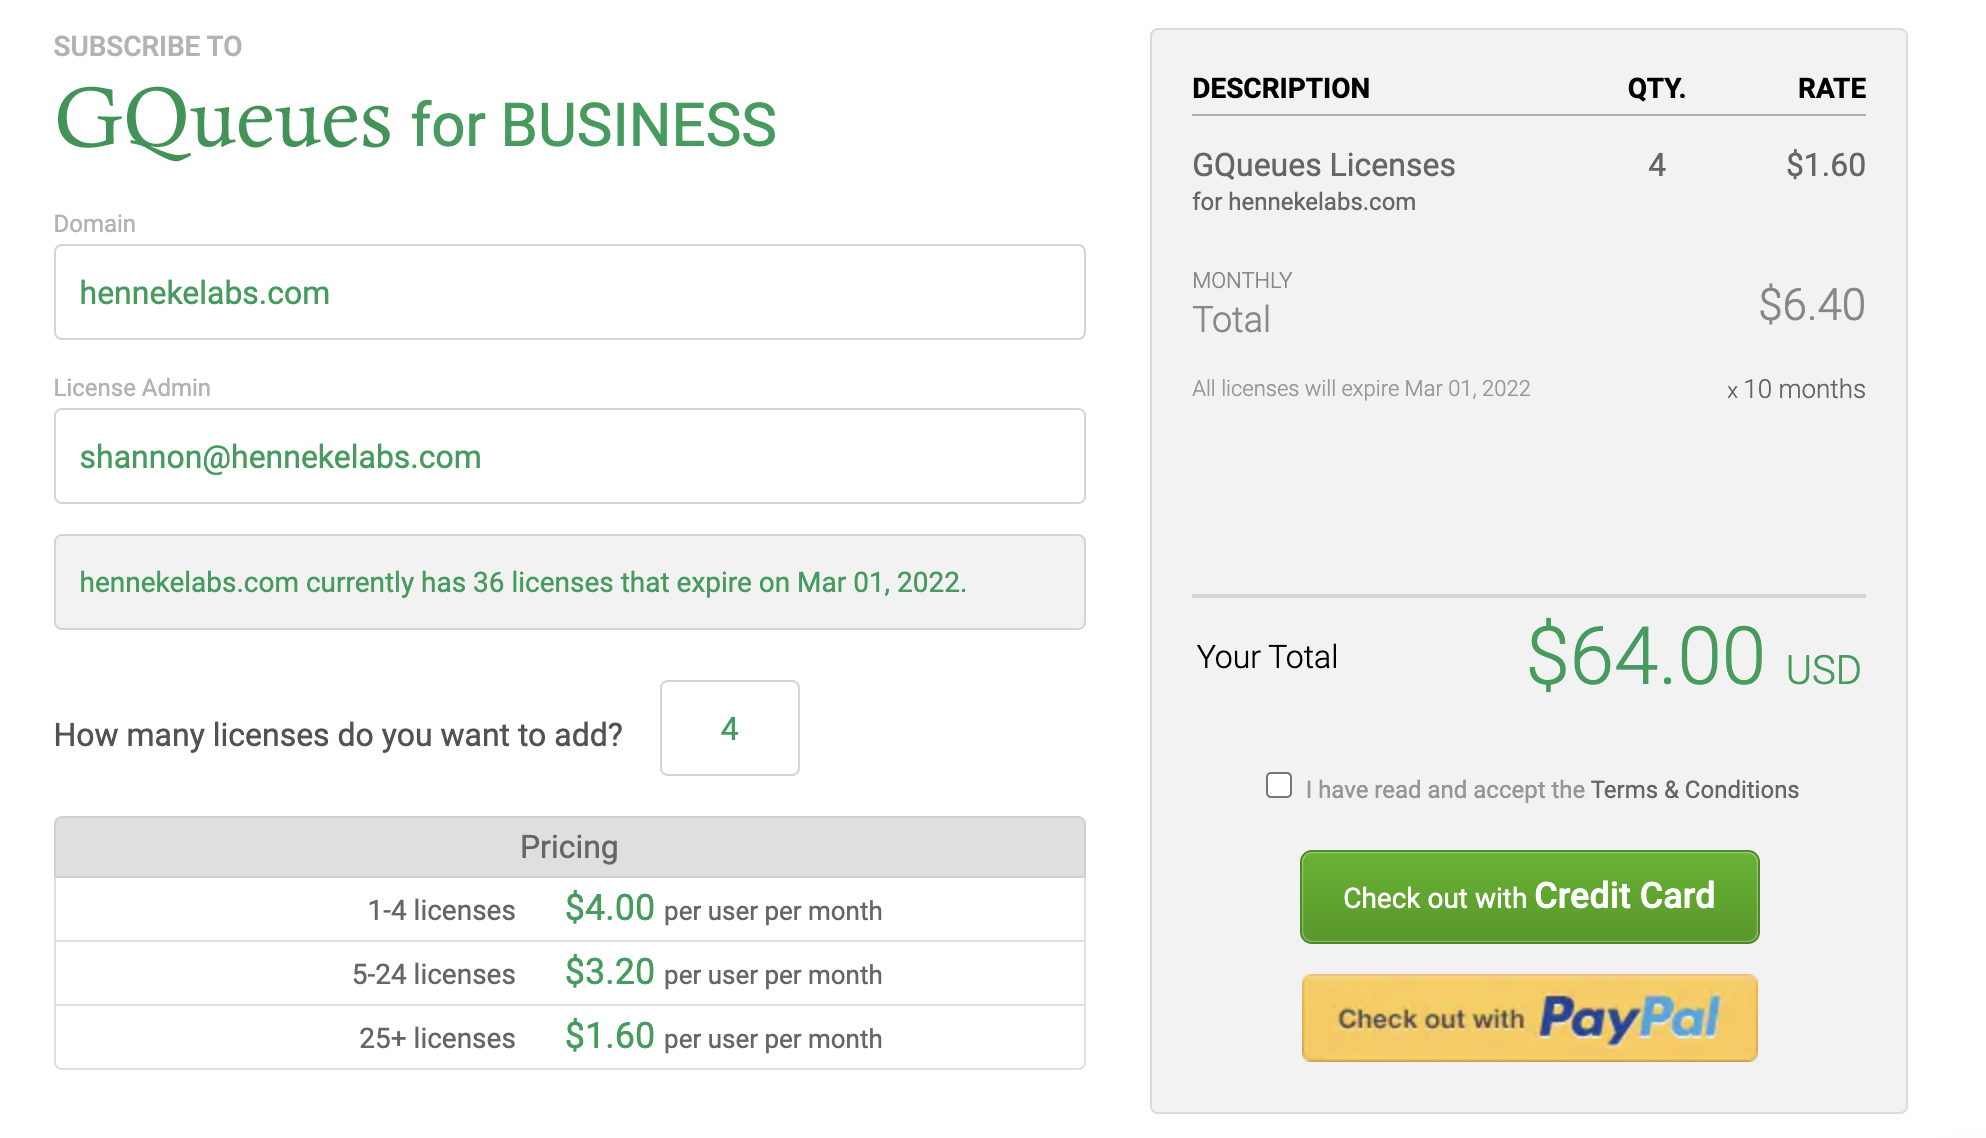 Checkout page to buy more licenses for GQueues for BUSINESS subscription